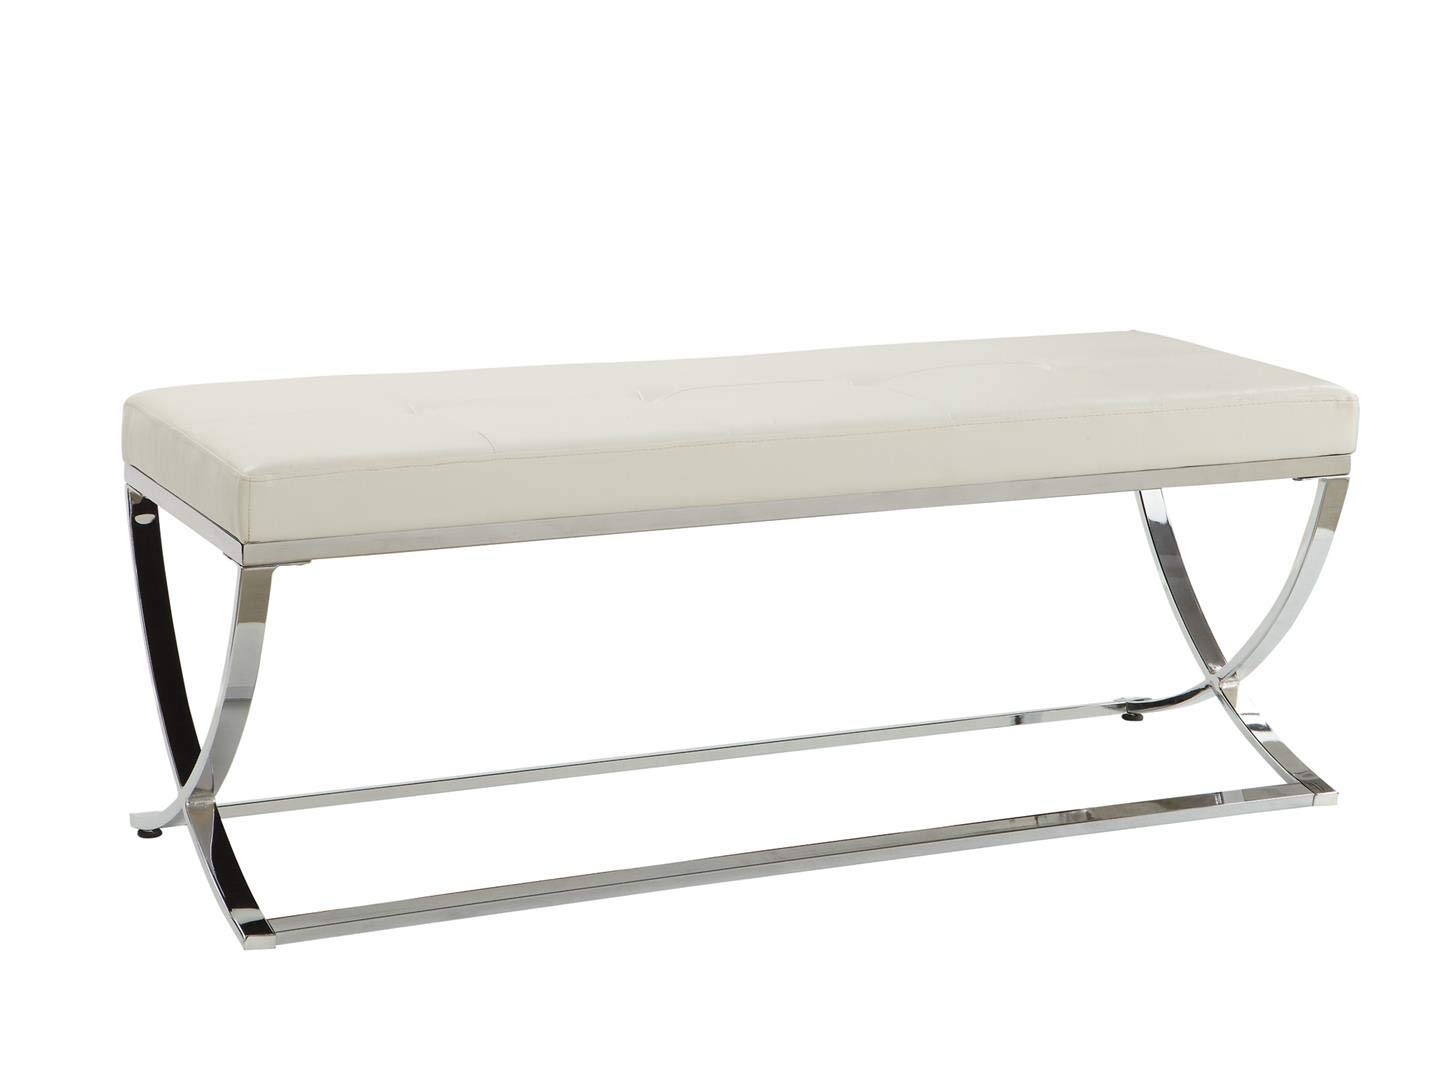 Man-Made Leather Bench with Metal Base White and Chrome